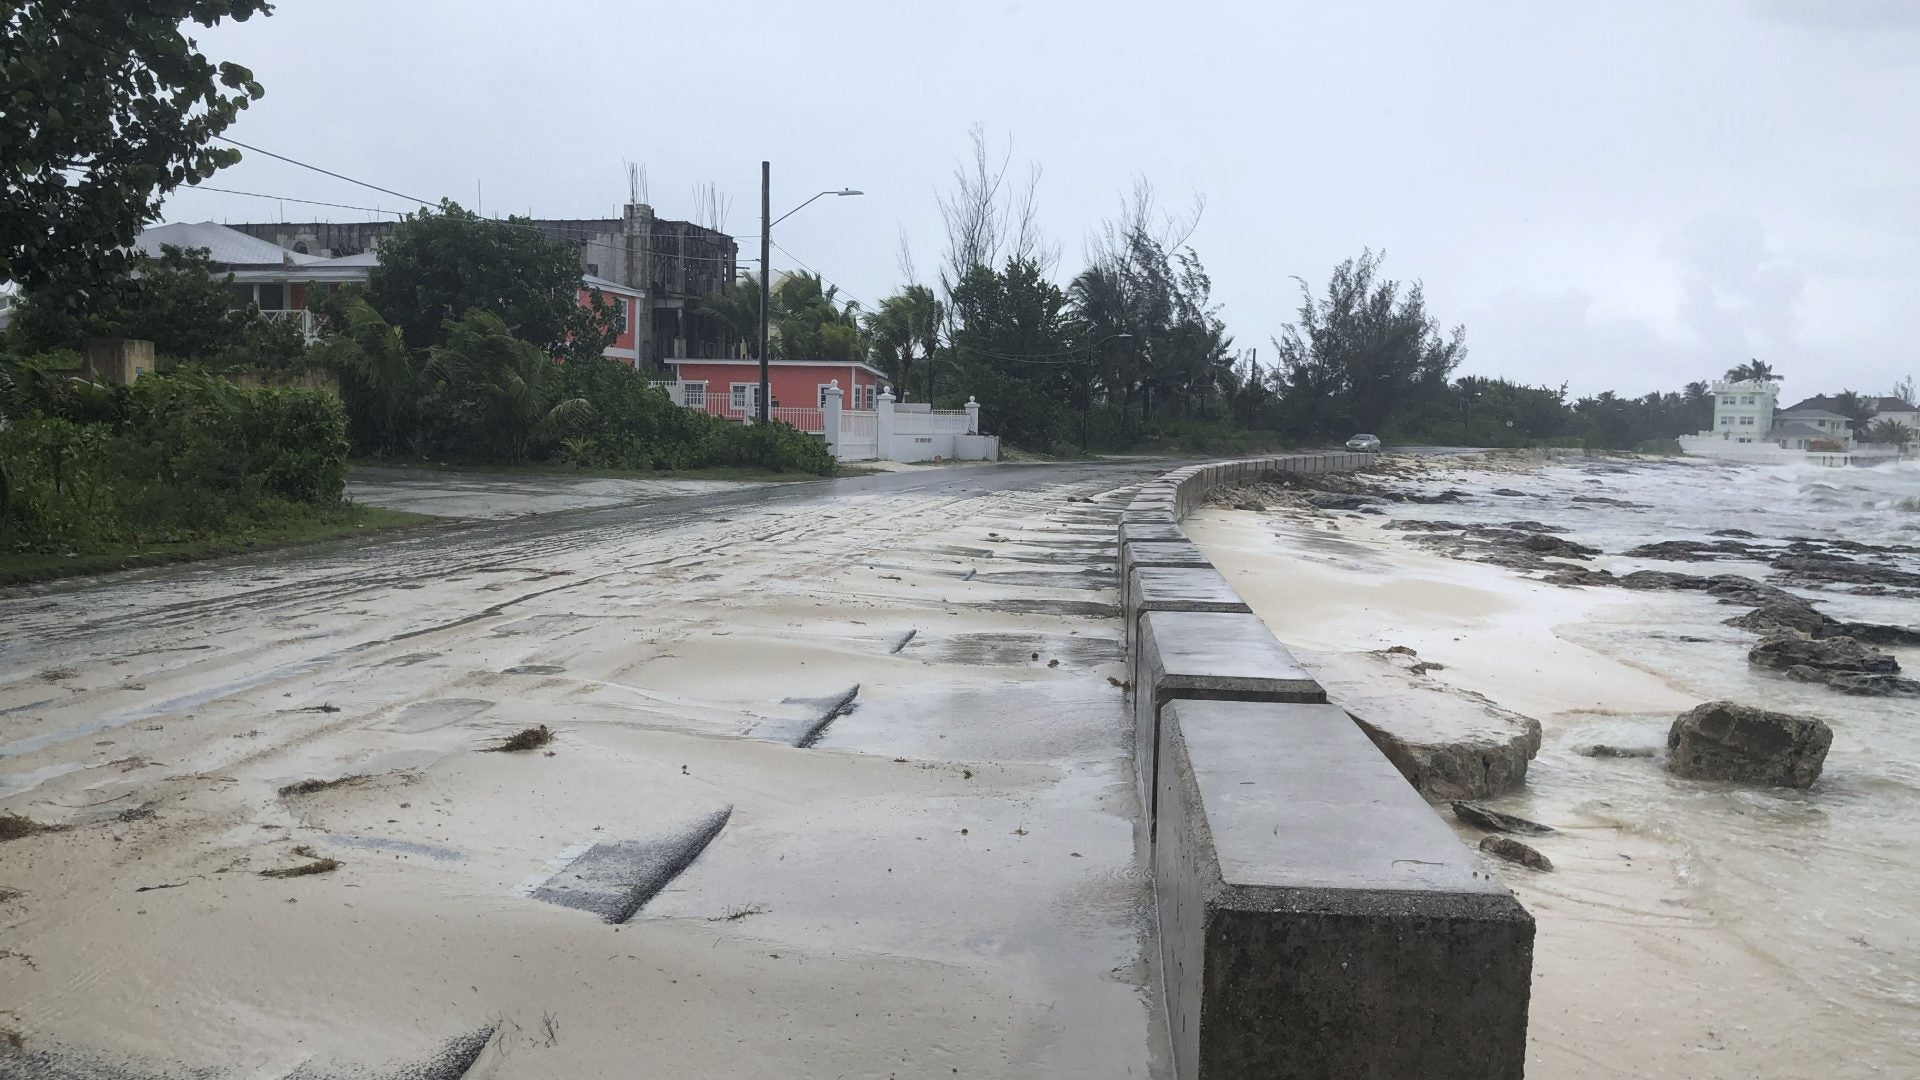 Bahamians In Recovery Mode After Hurricane Dorian